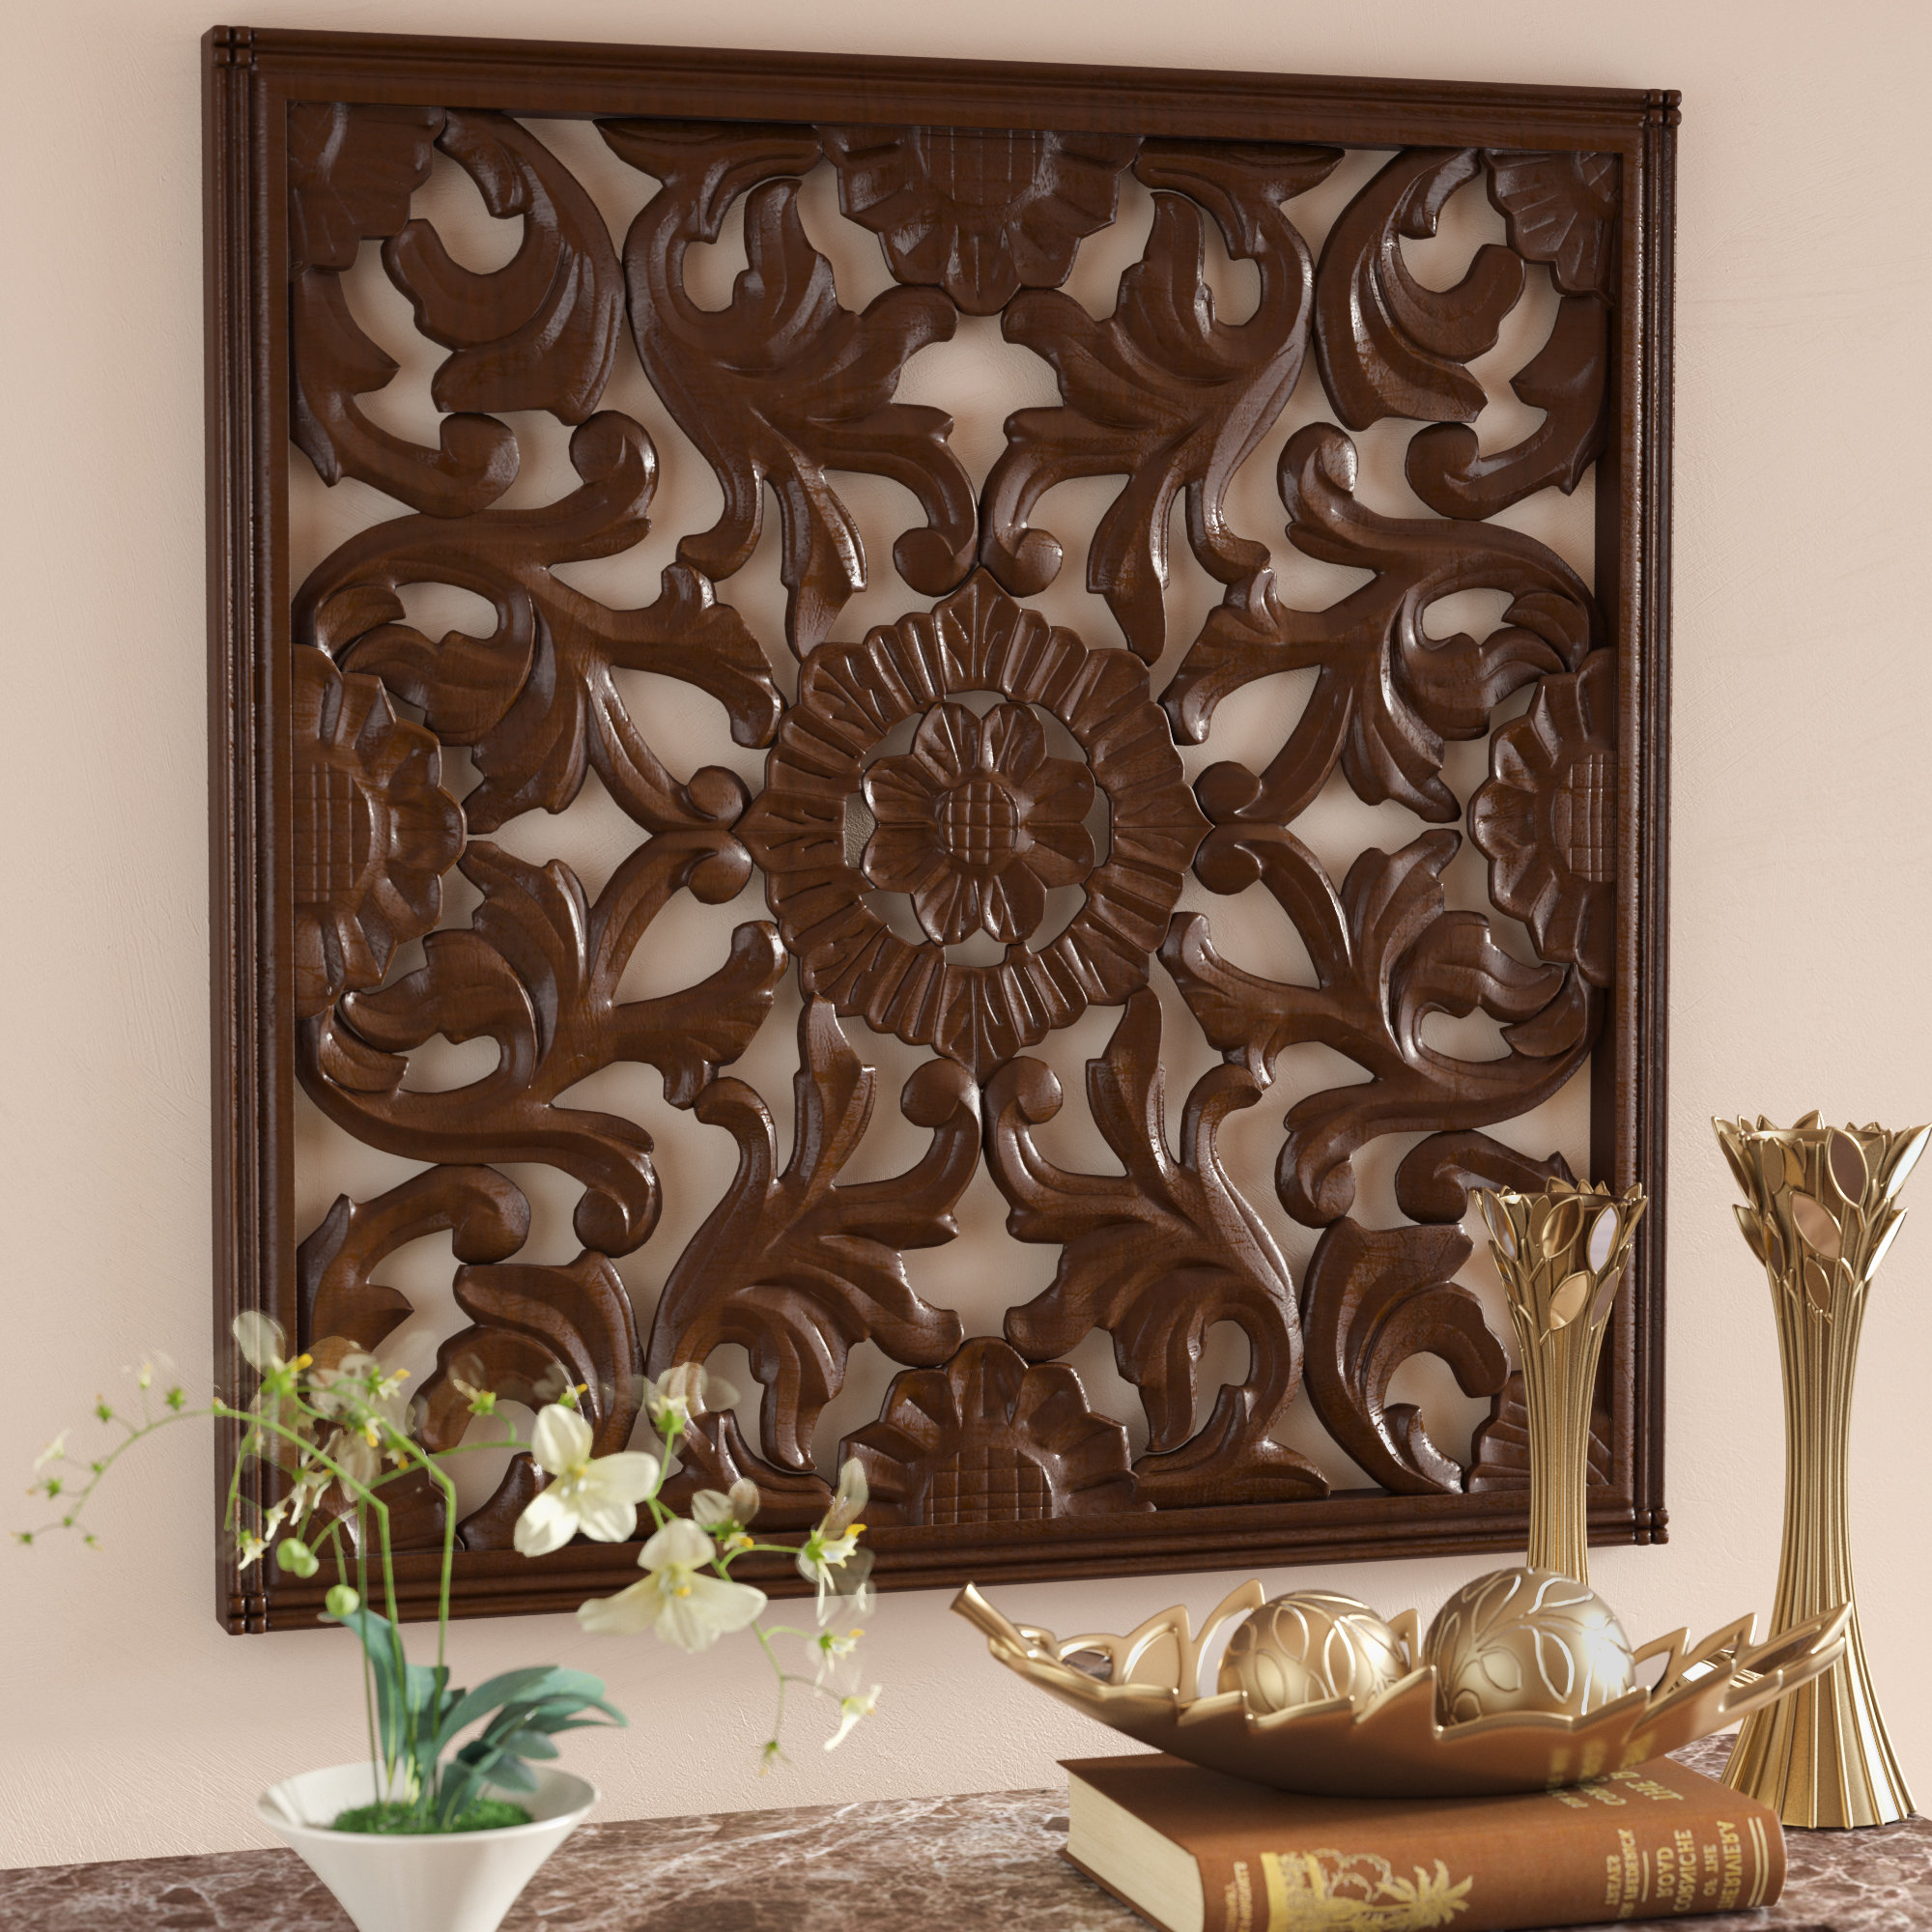 European Medallion Wall Decor With Regard To Recent Astoria Grand Square Handcrafted Medallion Wall Décor & Reviews (View 12 of 20)